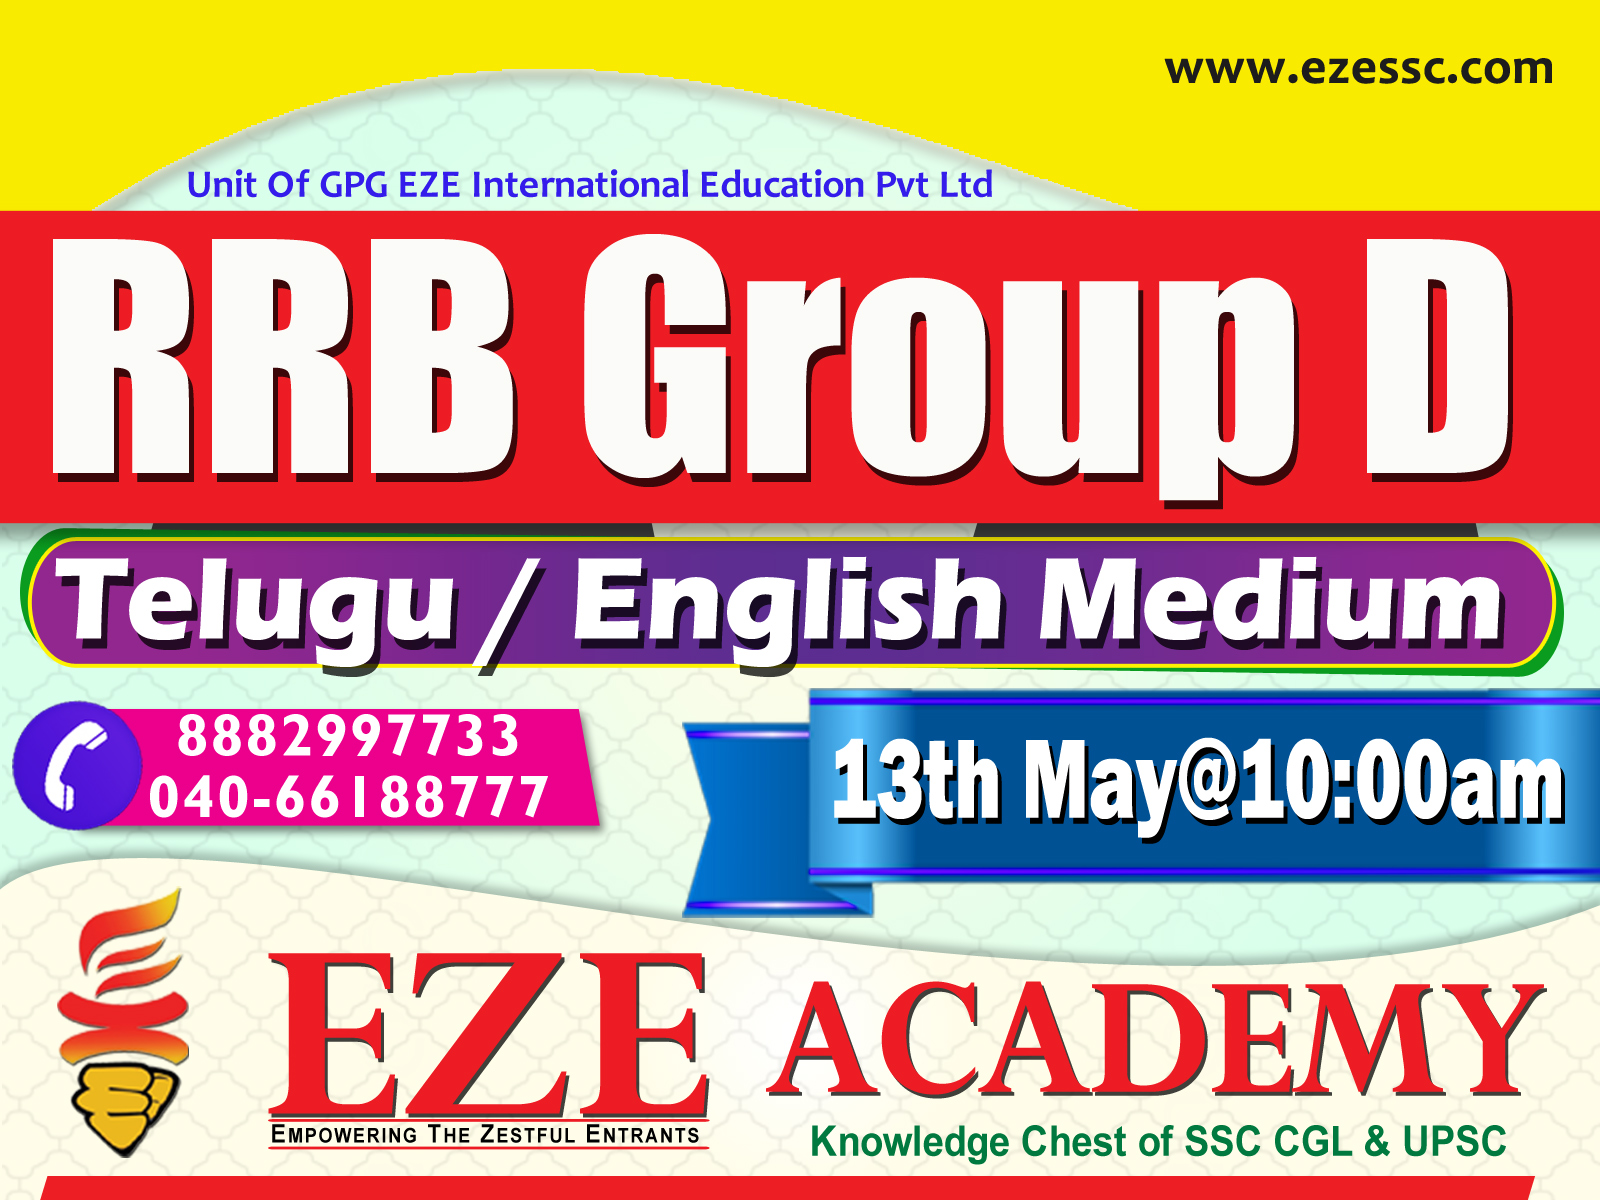 rrb group d coaching center in hyderabad